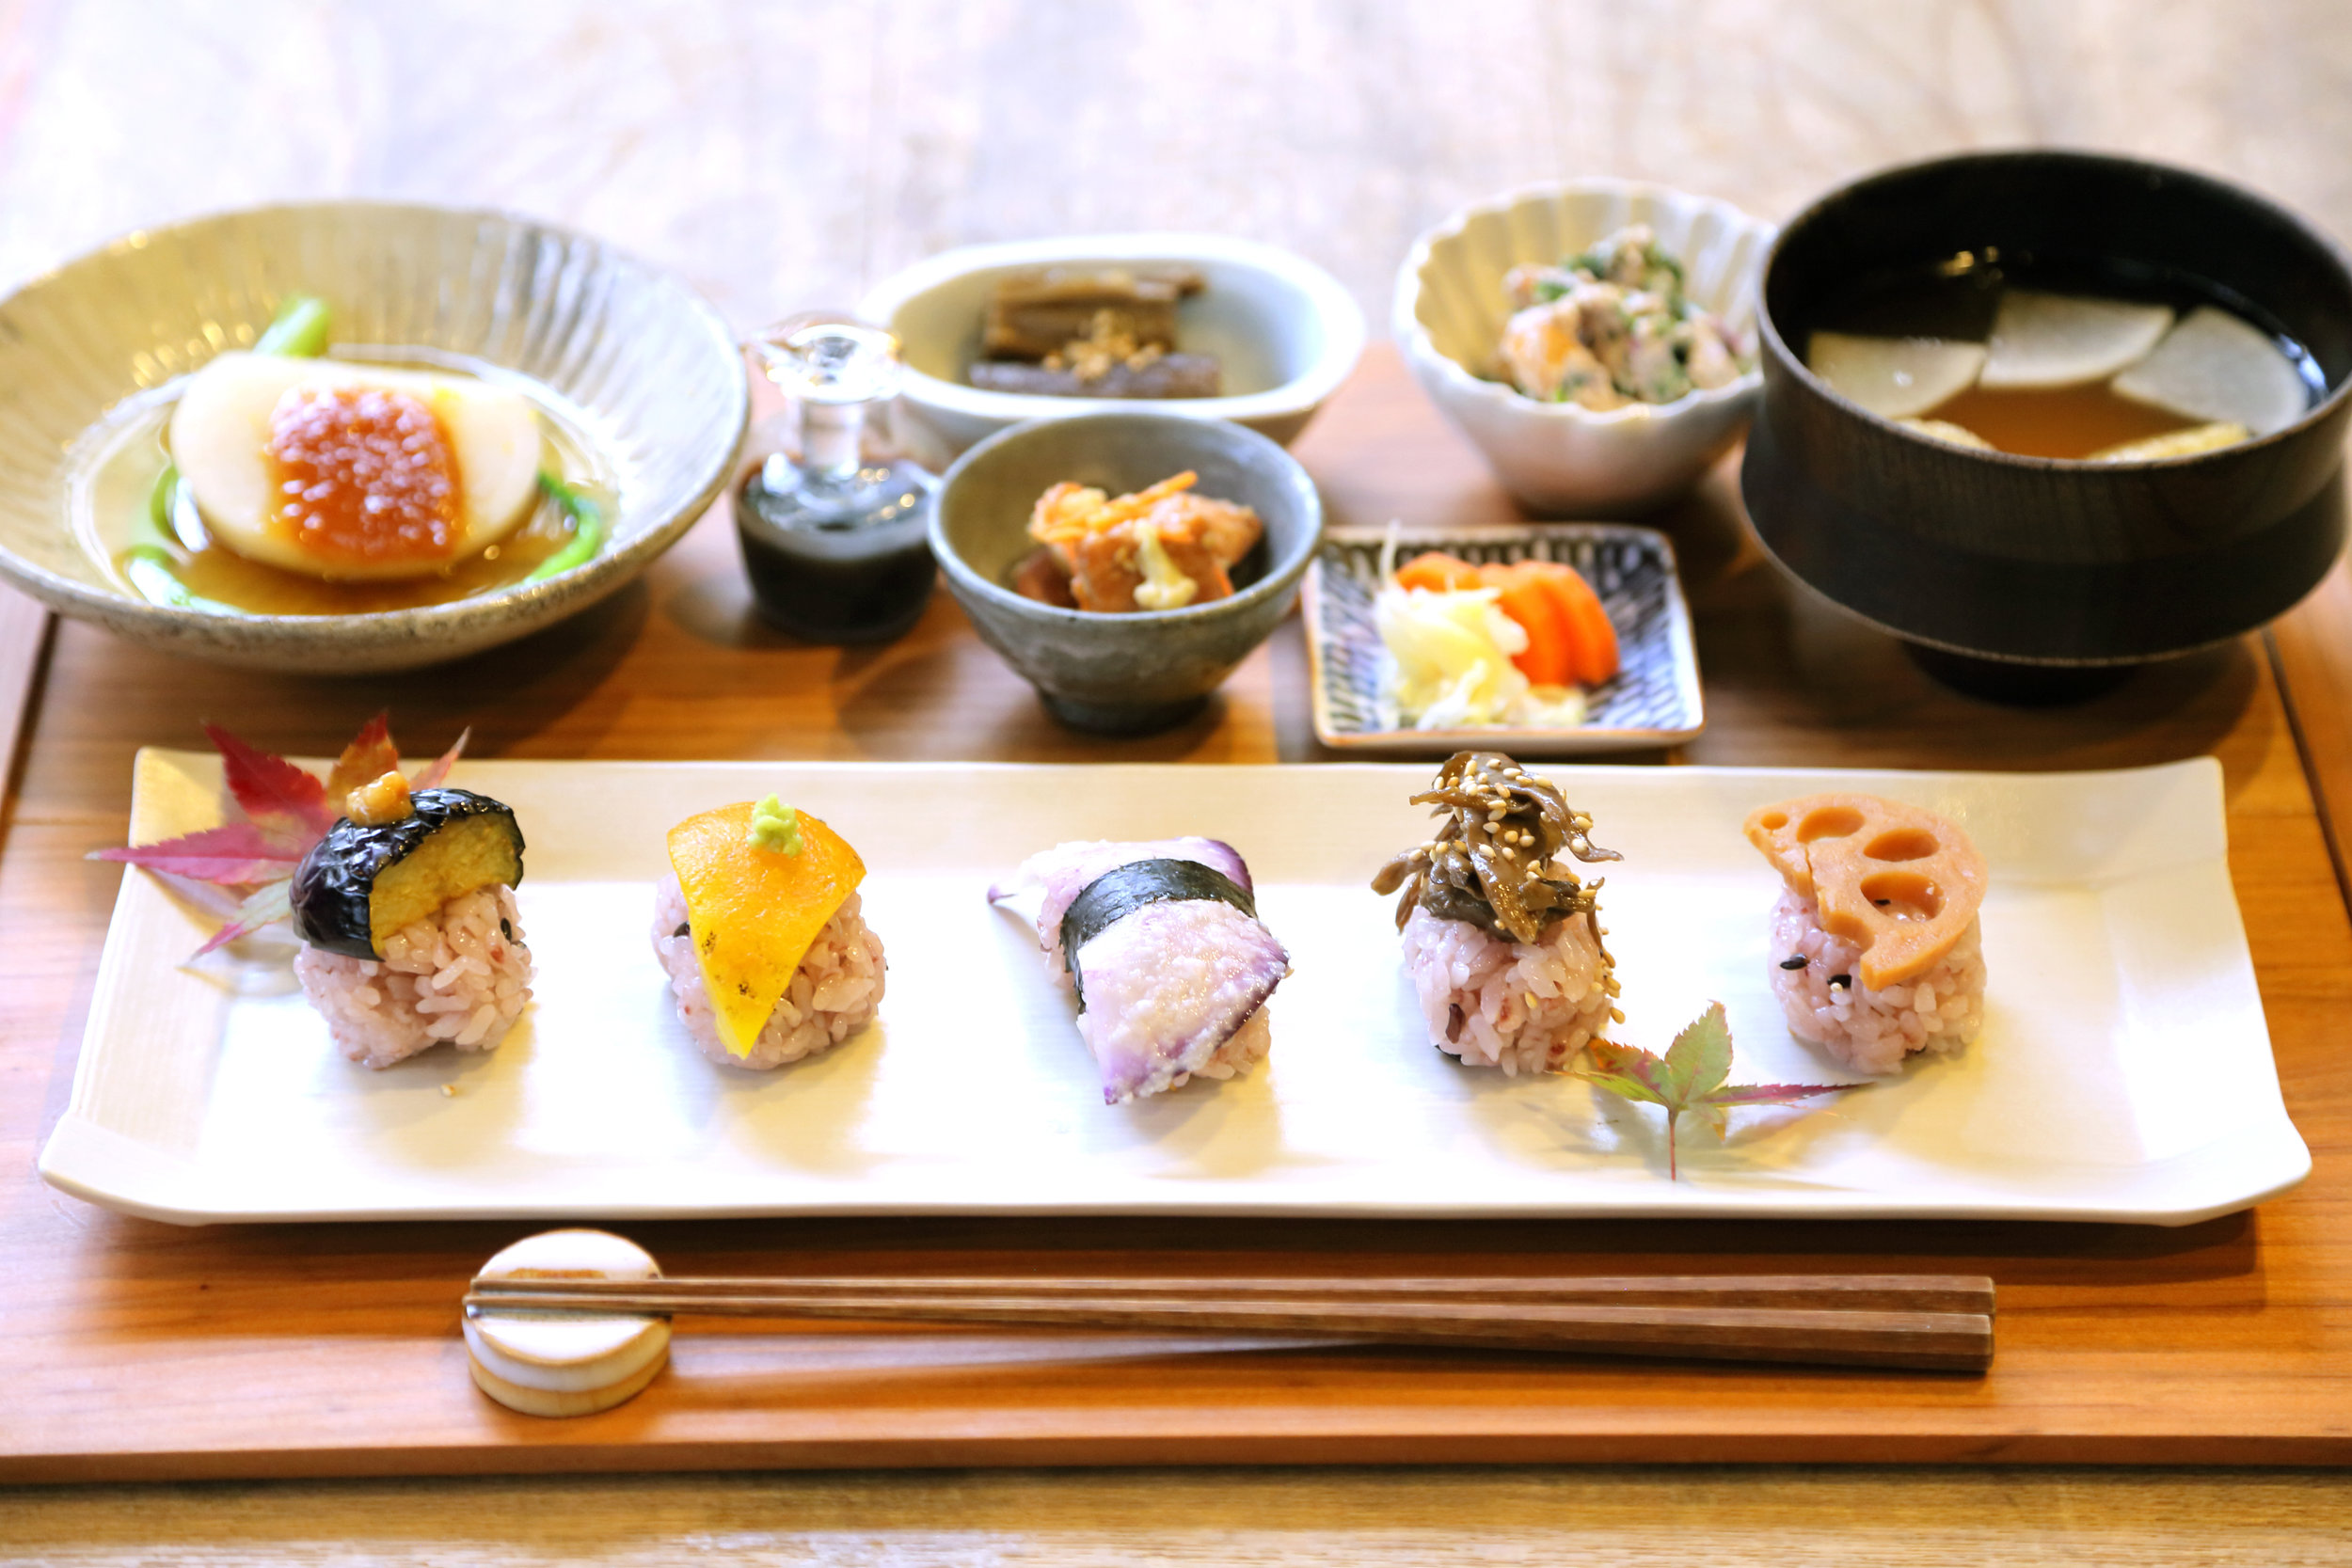 Re:gendo - The relaxing atmosphere at this 80 year old house in Nishi-Ogikubo makes you feel as if you were at your own dinner table. We hope you enjoy the large selection of wonderful dishes we have prepared for our diners.